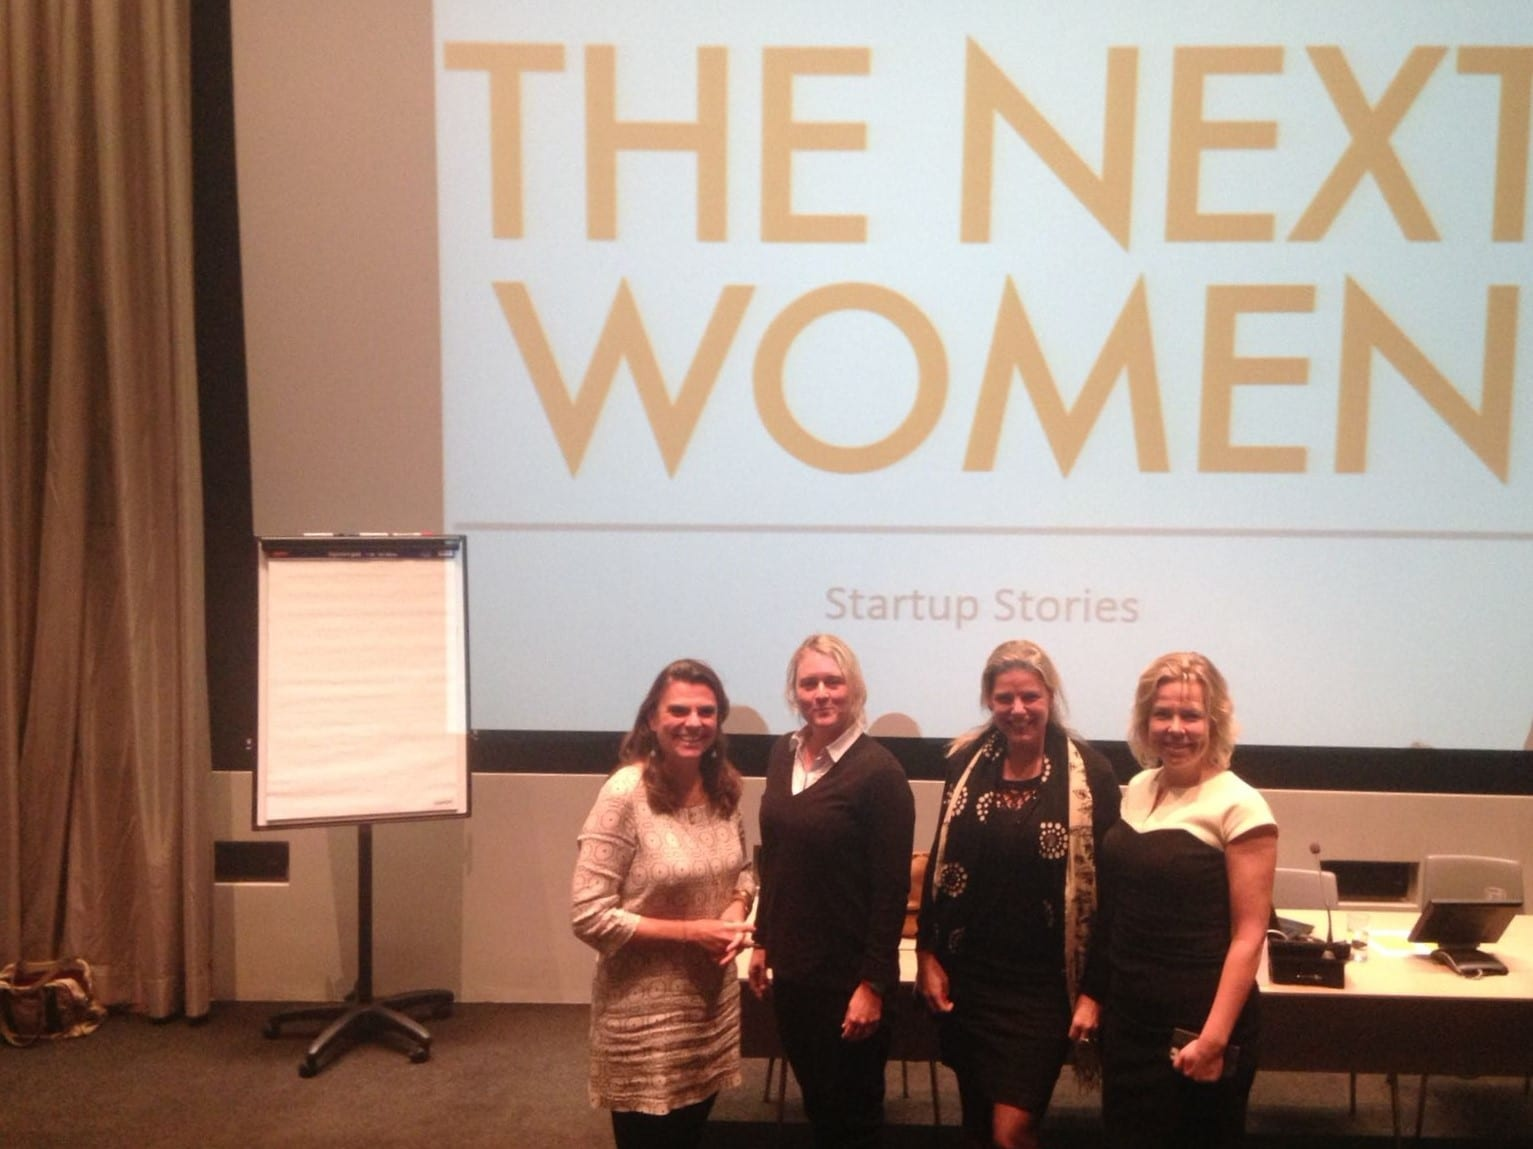 TheNextWomen encourages women to develop their business ideas